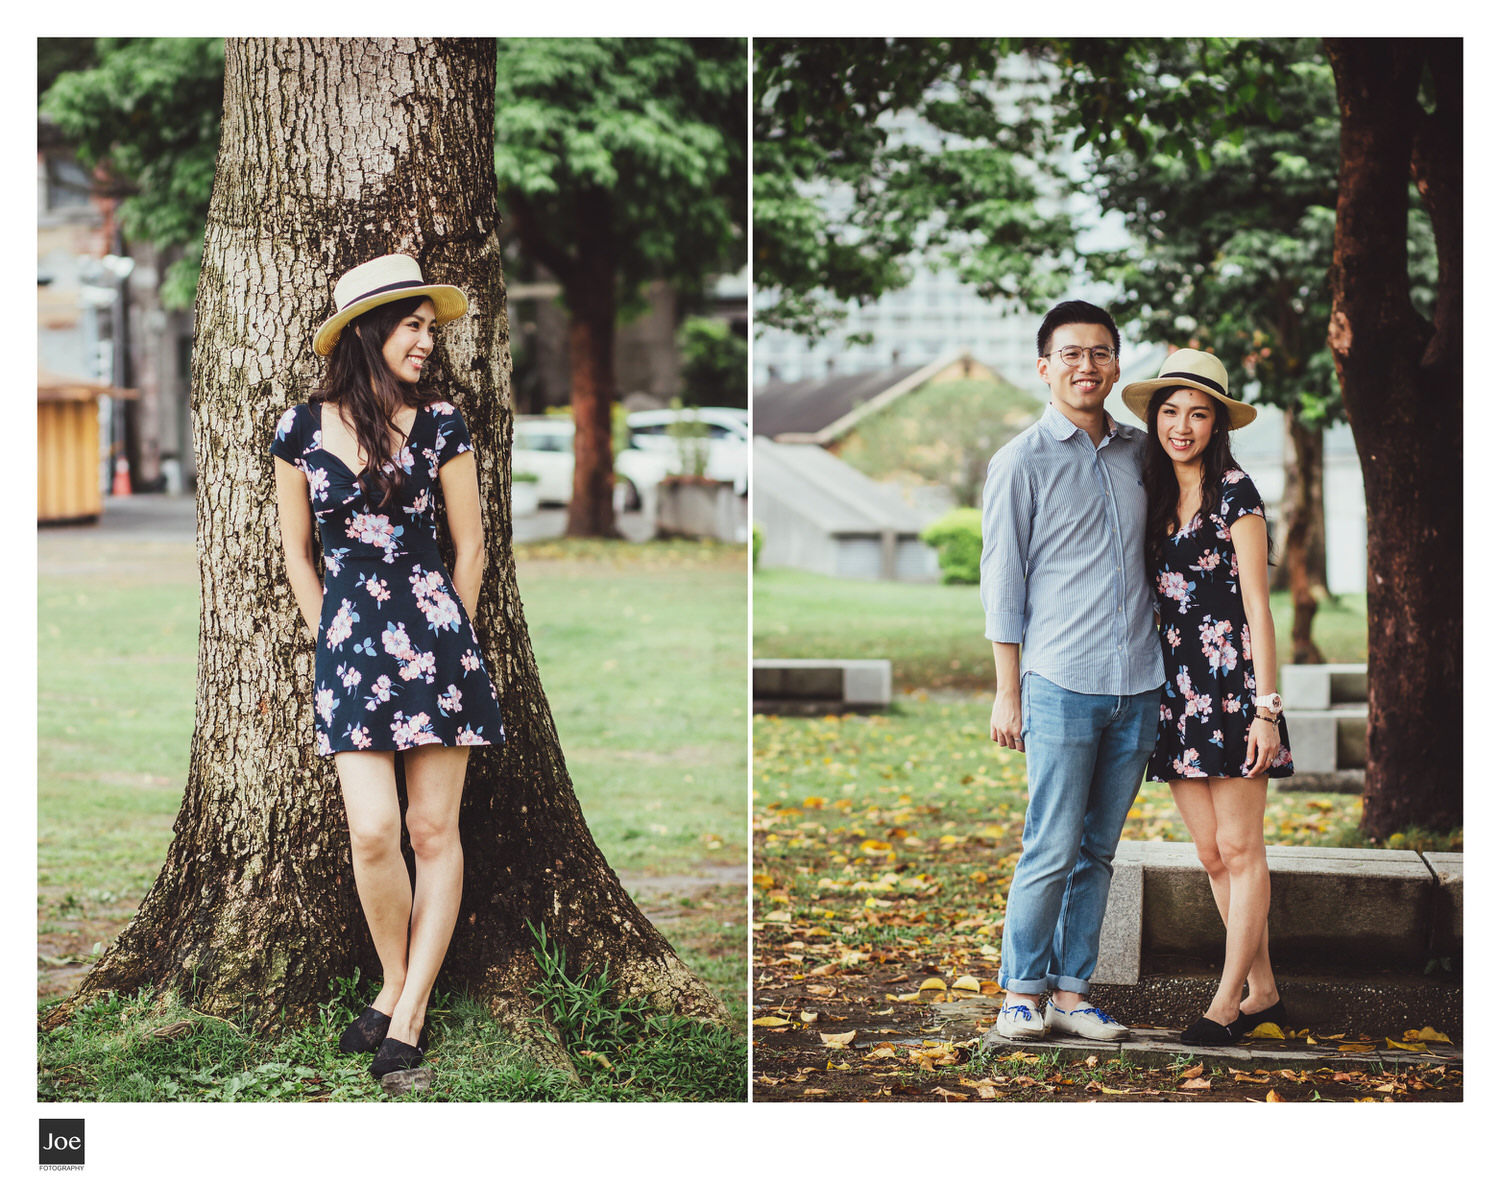 joe-fotography-engagement-photo-adrian-hilpy-54.jpg